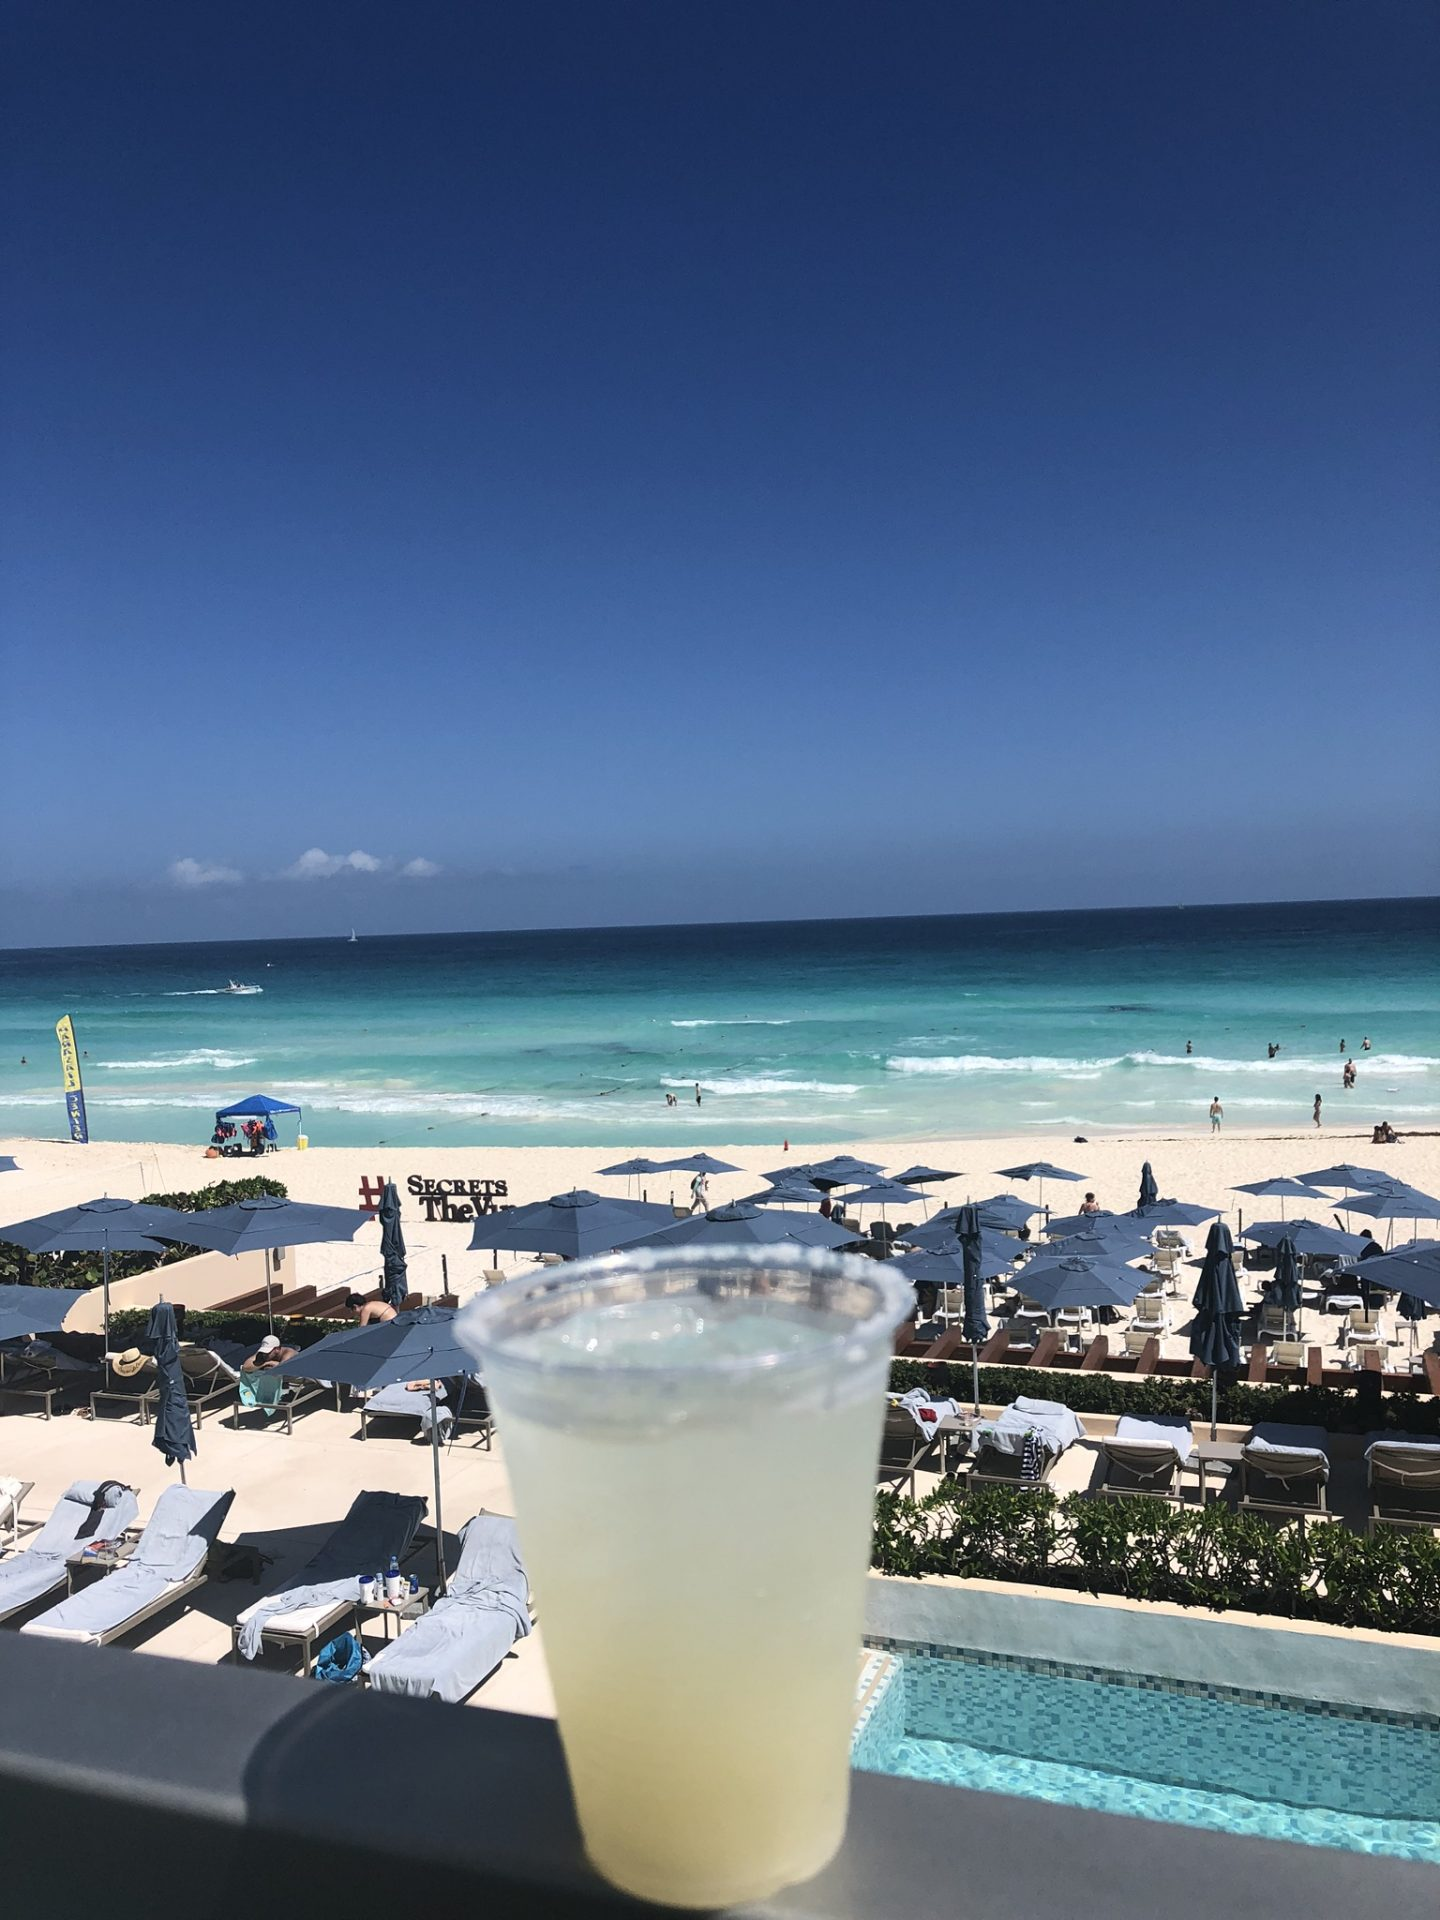 A margarita on the beach in Cancun